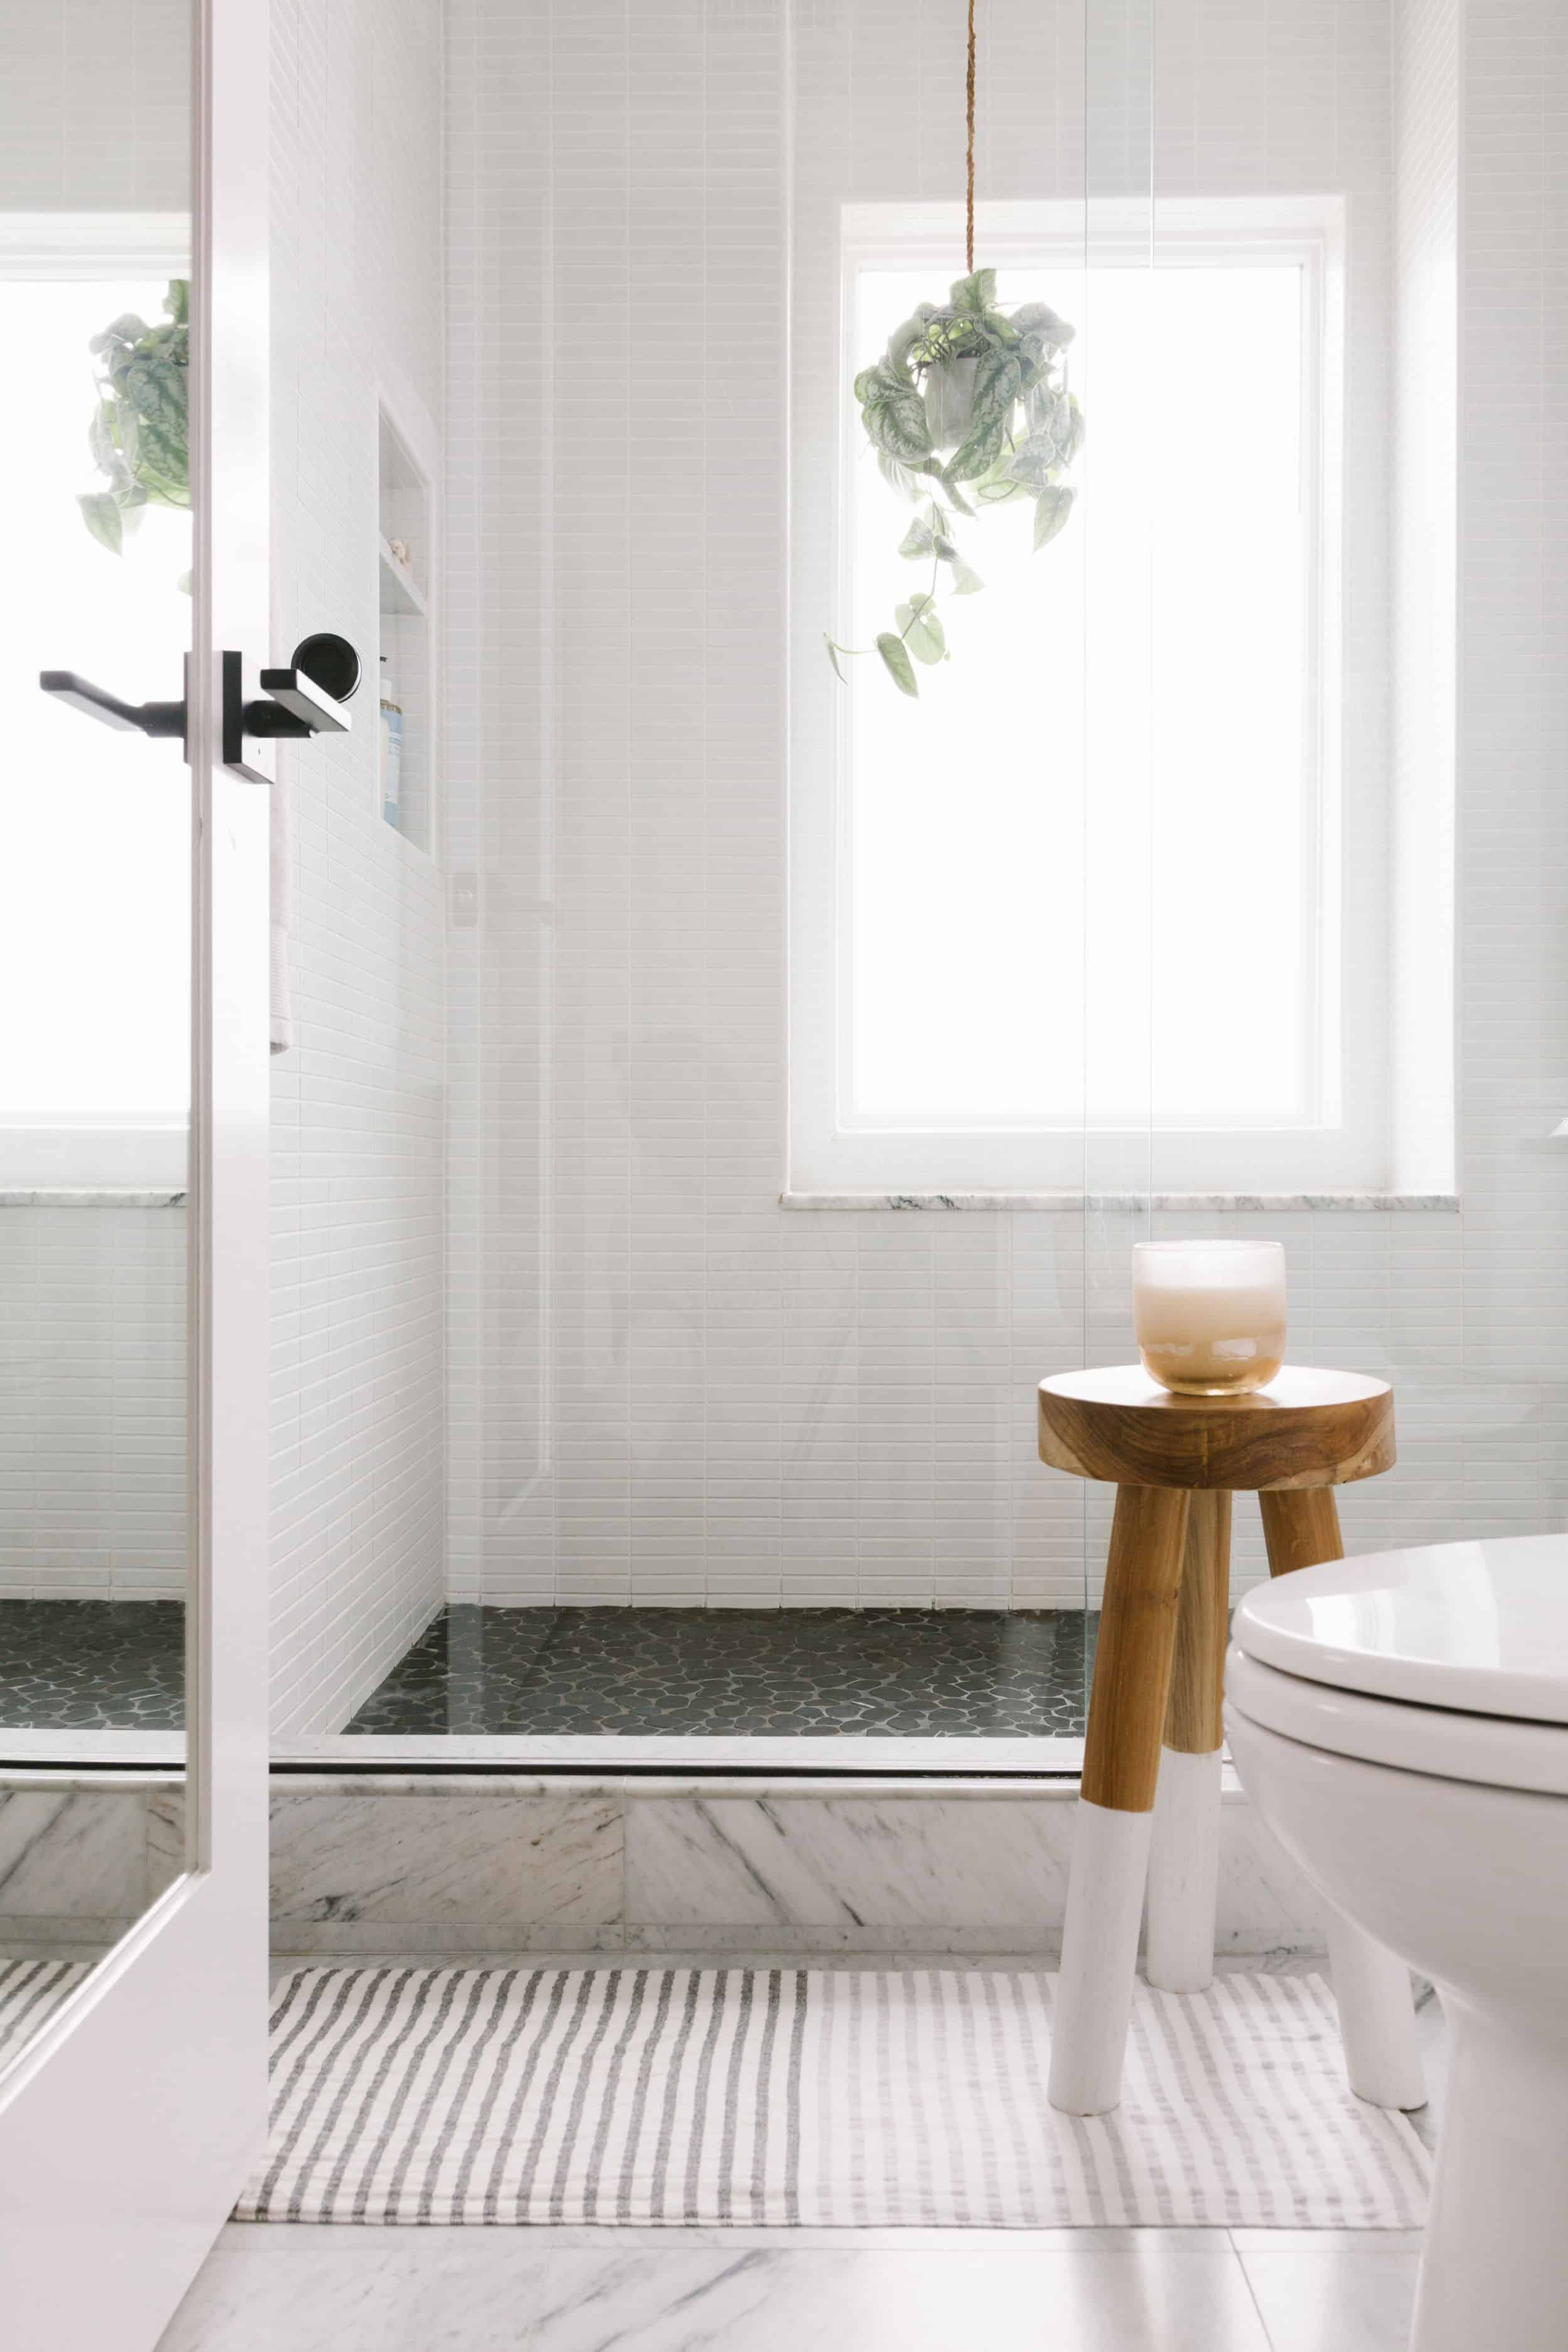 Samantha Gluck Emily Henderson Bathroom Black Pepple Floor Marble Floor Tile